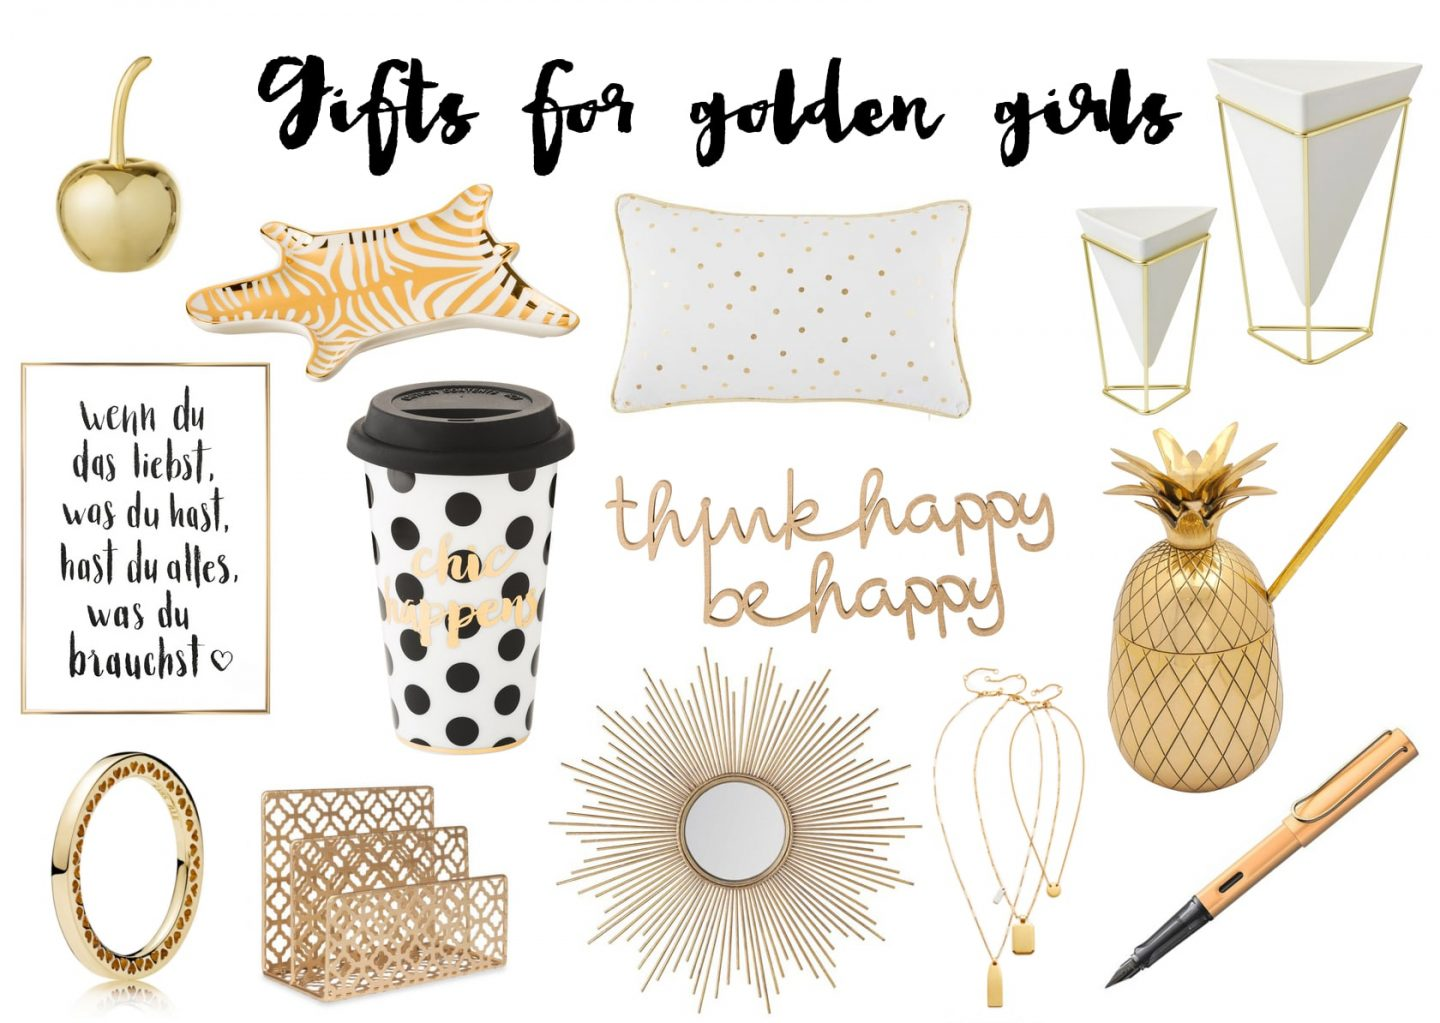 12 Days Until Christmas: Gift Guide for Everyone